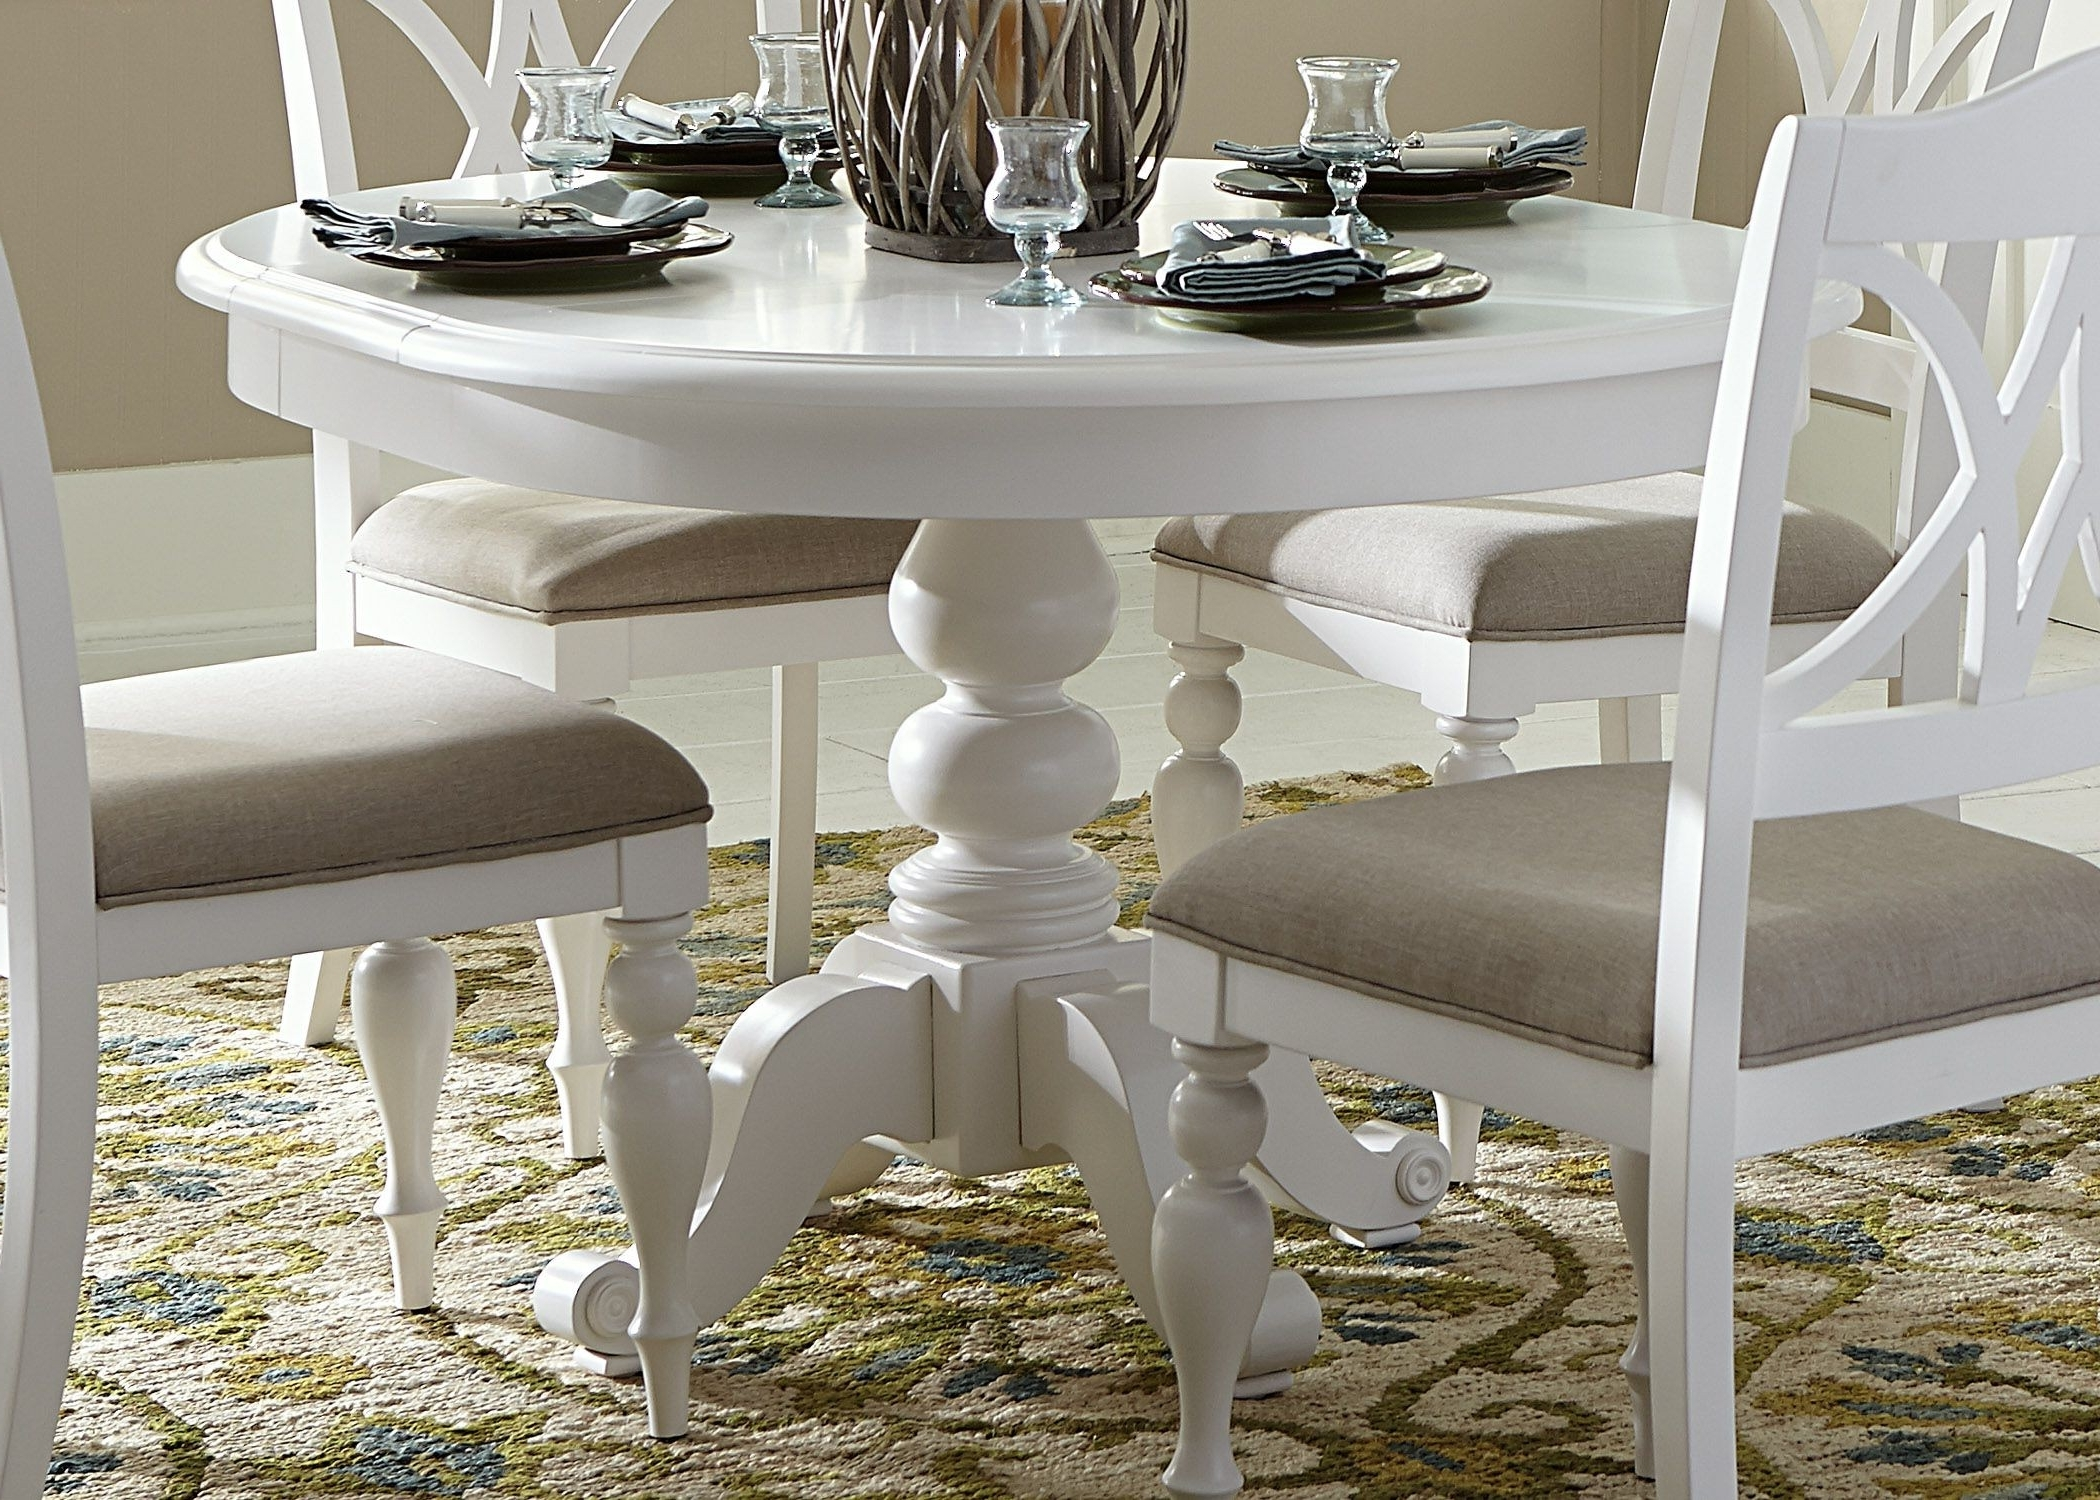 Small Round White Dining Tables With Current 7 White Round Modern Dining Tables Cute Furniture Throughout Table (View 17 of 25)